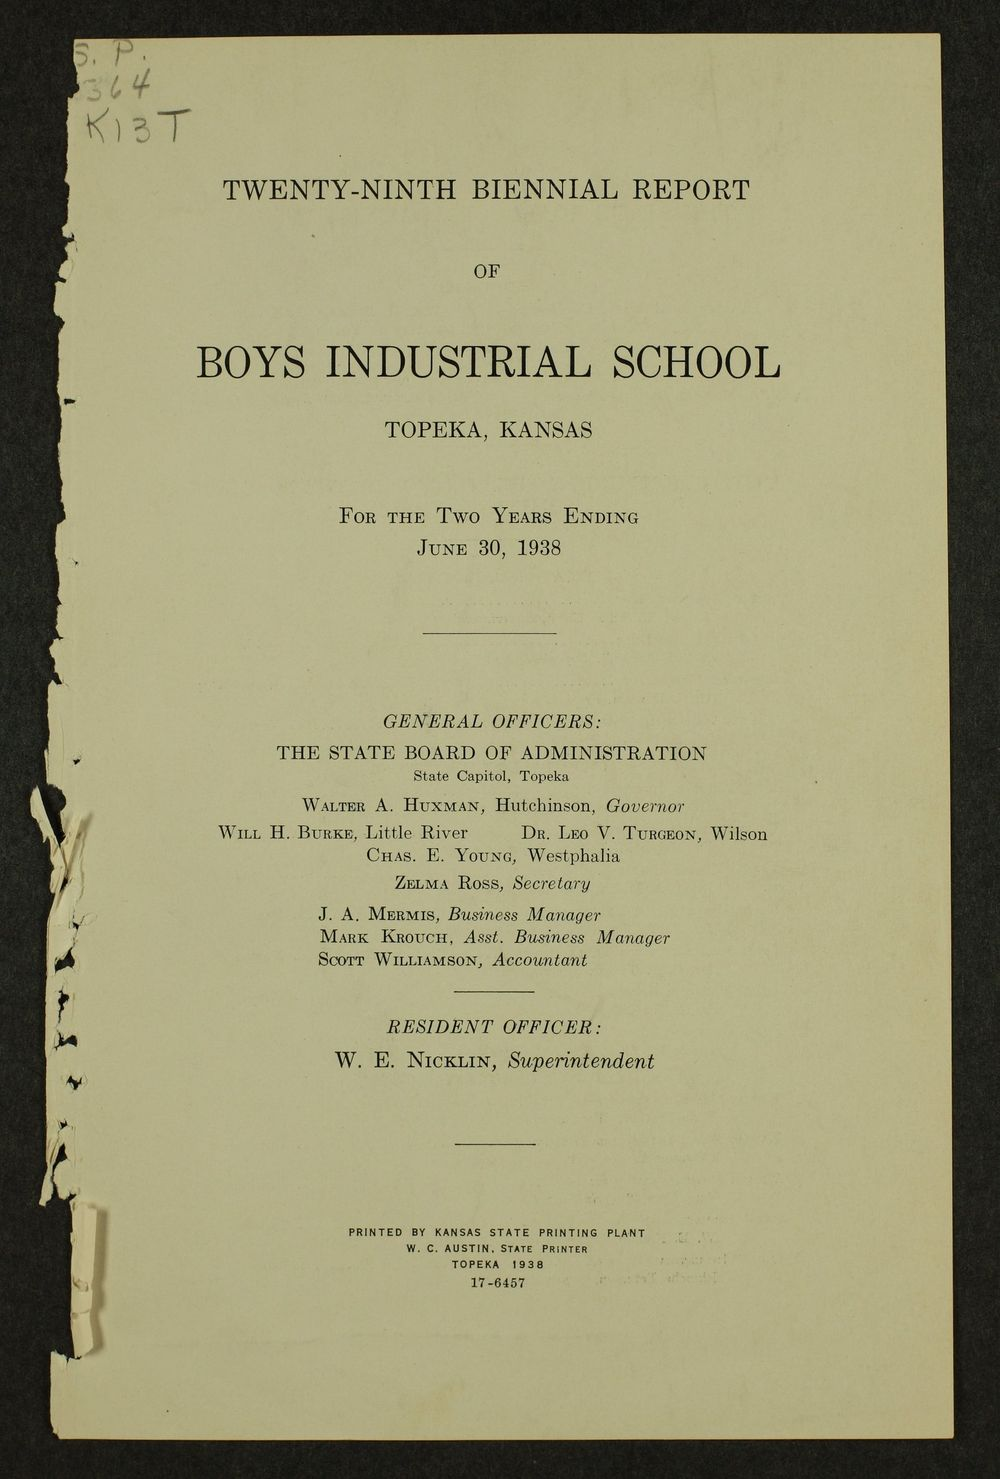 Biennial report of the Boys Industrial School, 1938 - 1